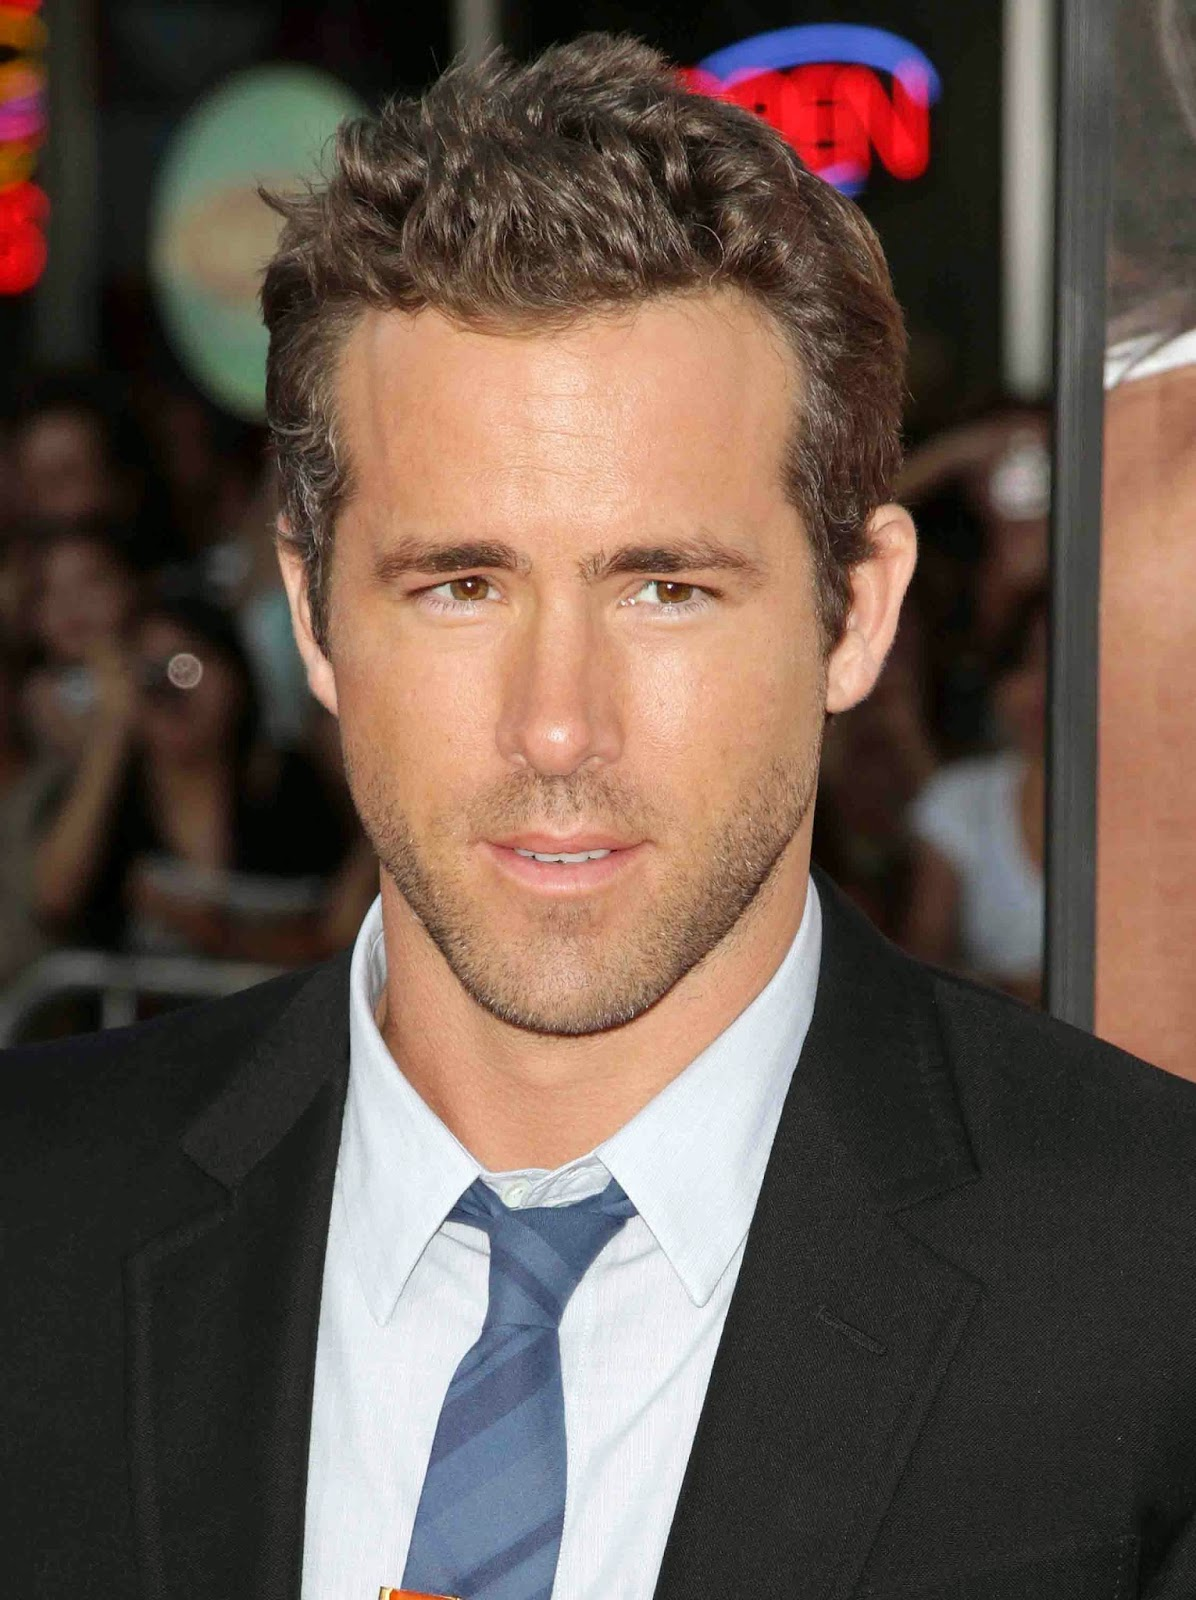 RYAN REYNOLDS 'CRAZY EXPERIENCE' OF FATHERHOOD Ryan Reynolds